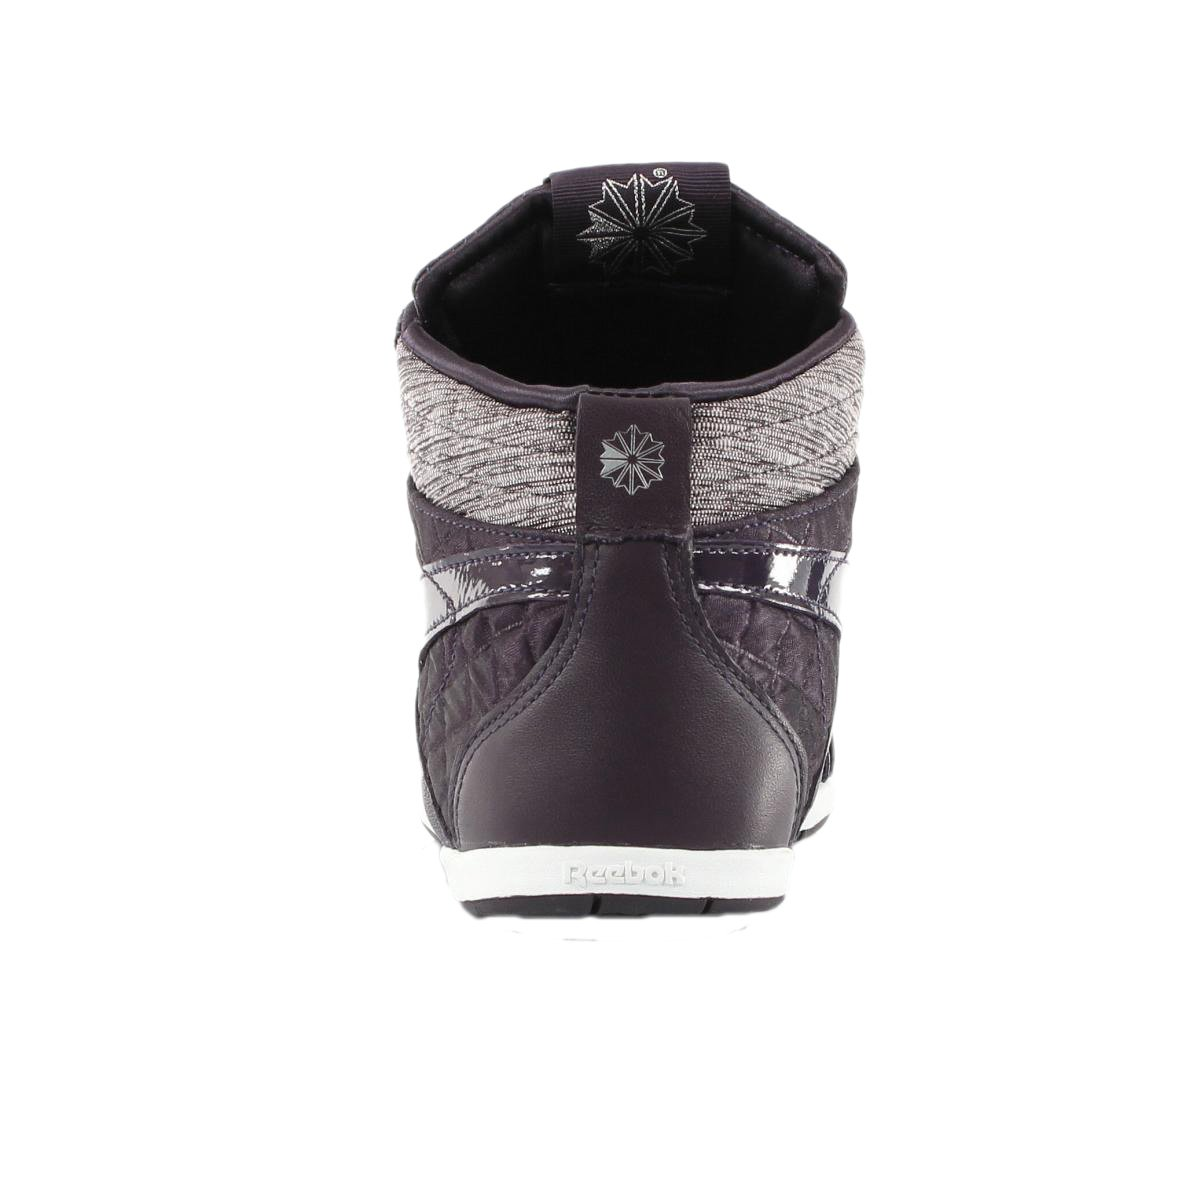 a95cc3a1720f42 Reebok Womens Girls Roxity Mid High top Purple Trainers sizes UK 4 5 6   Amazon.co.uk  Shoes   Bags